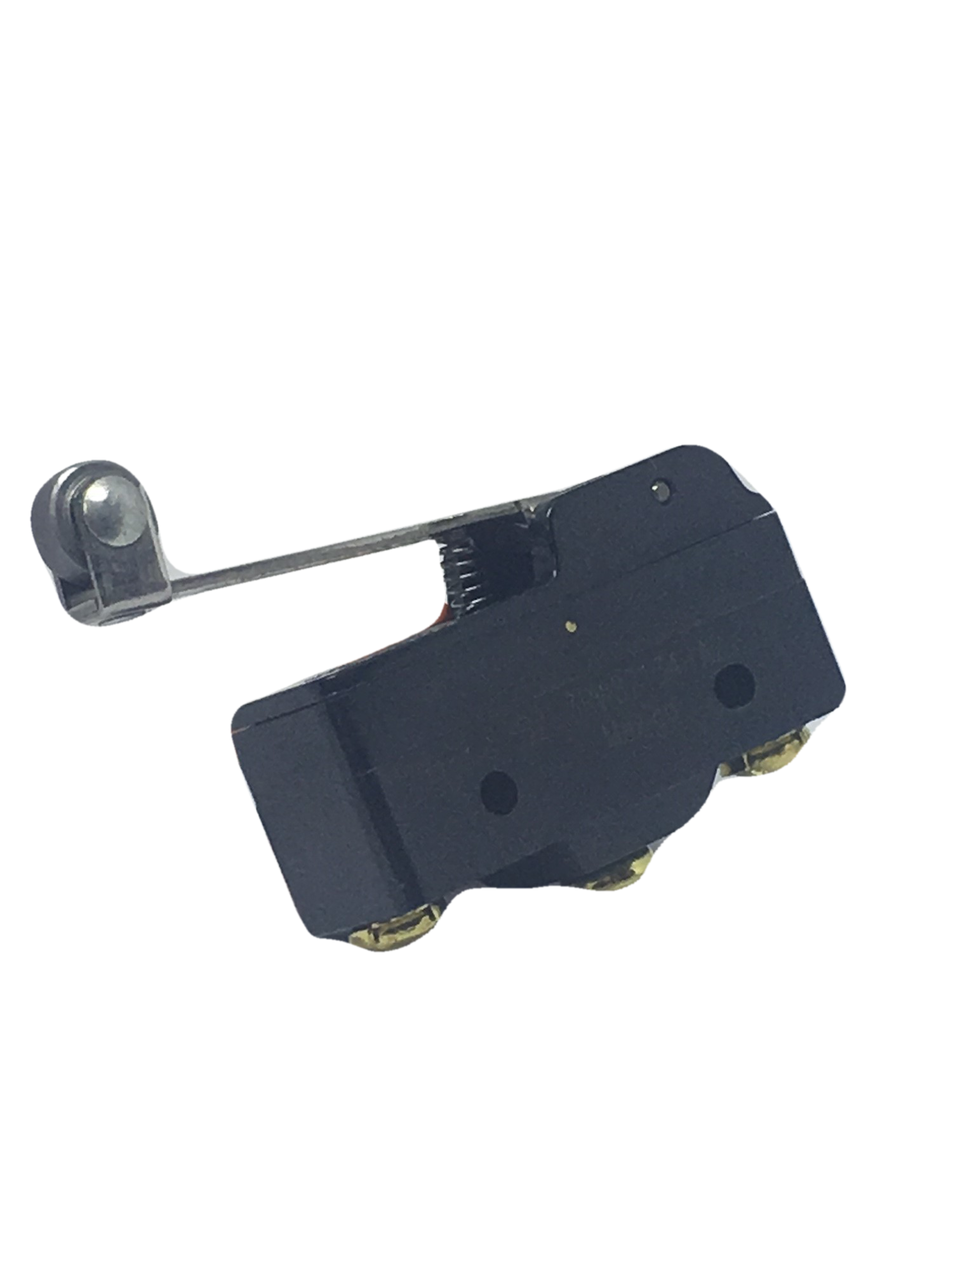 Bz 3rw82134 A2 Micro Switch Honeywell Snap Action Spdt Roller With Lever Screw 16a 480vac 250vdc